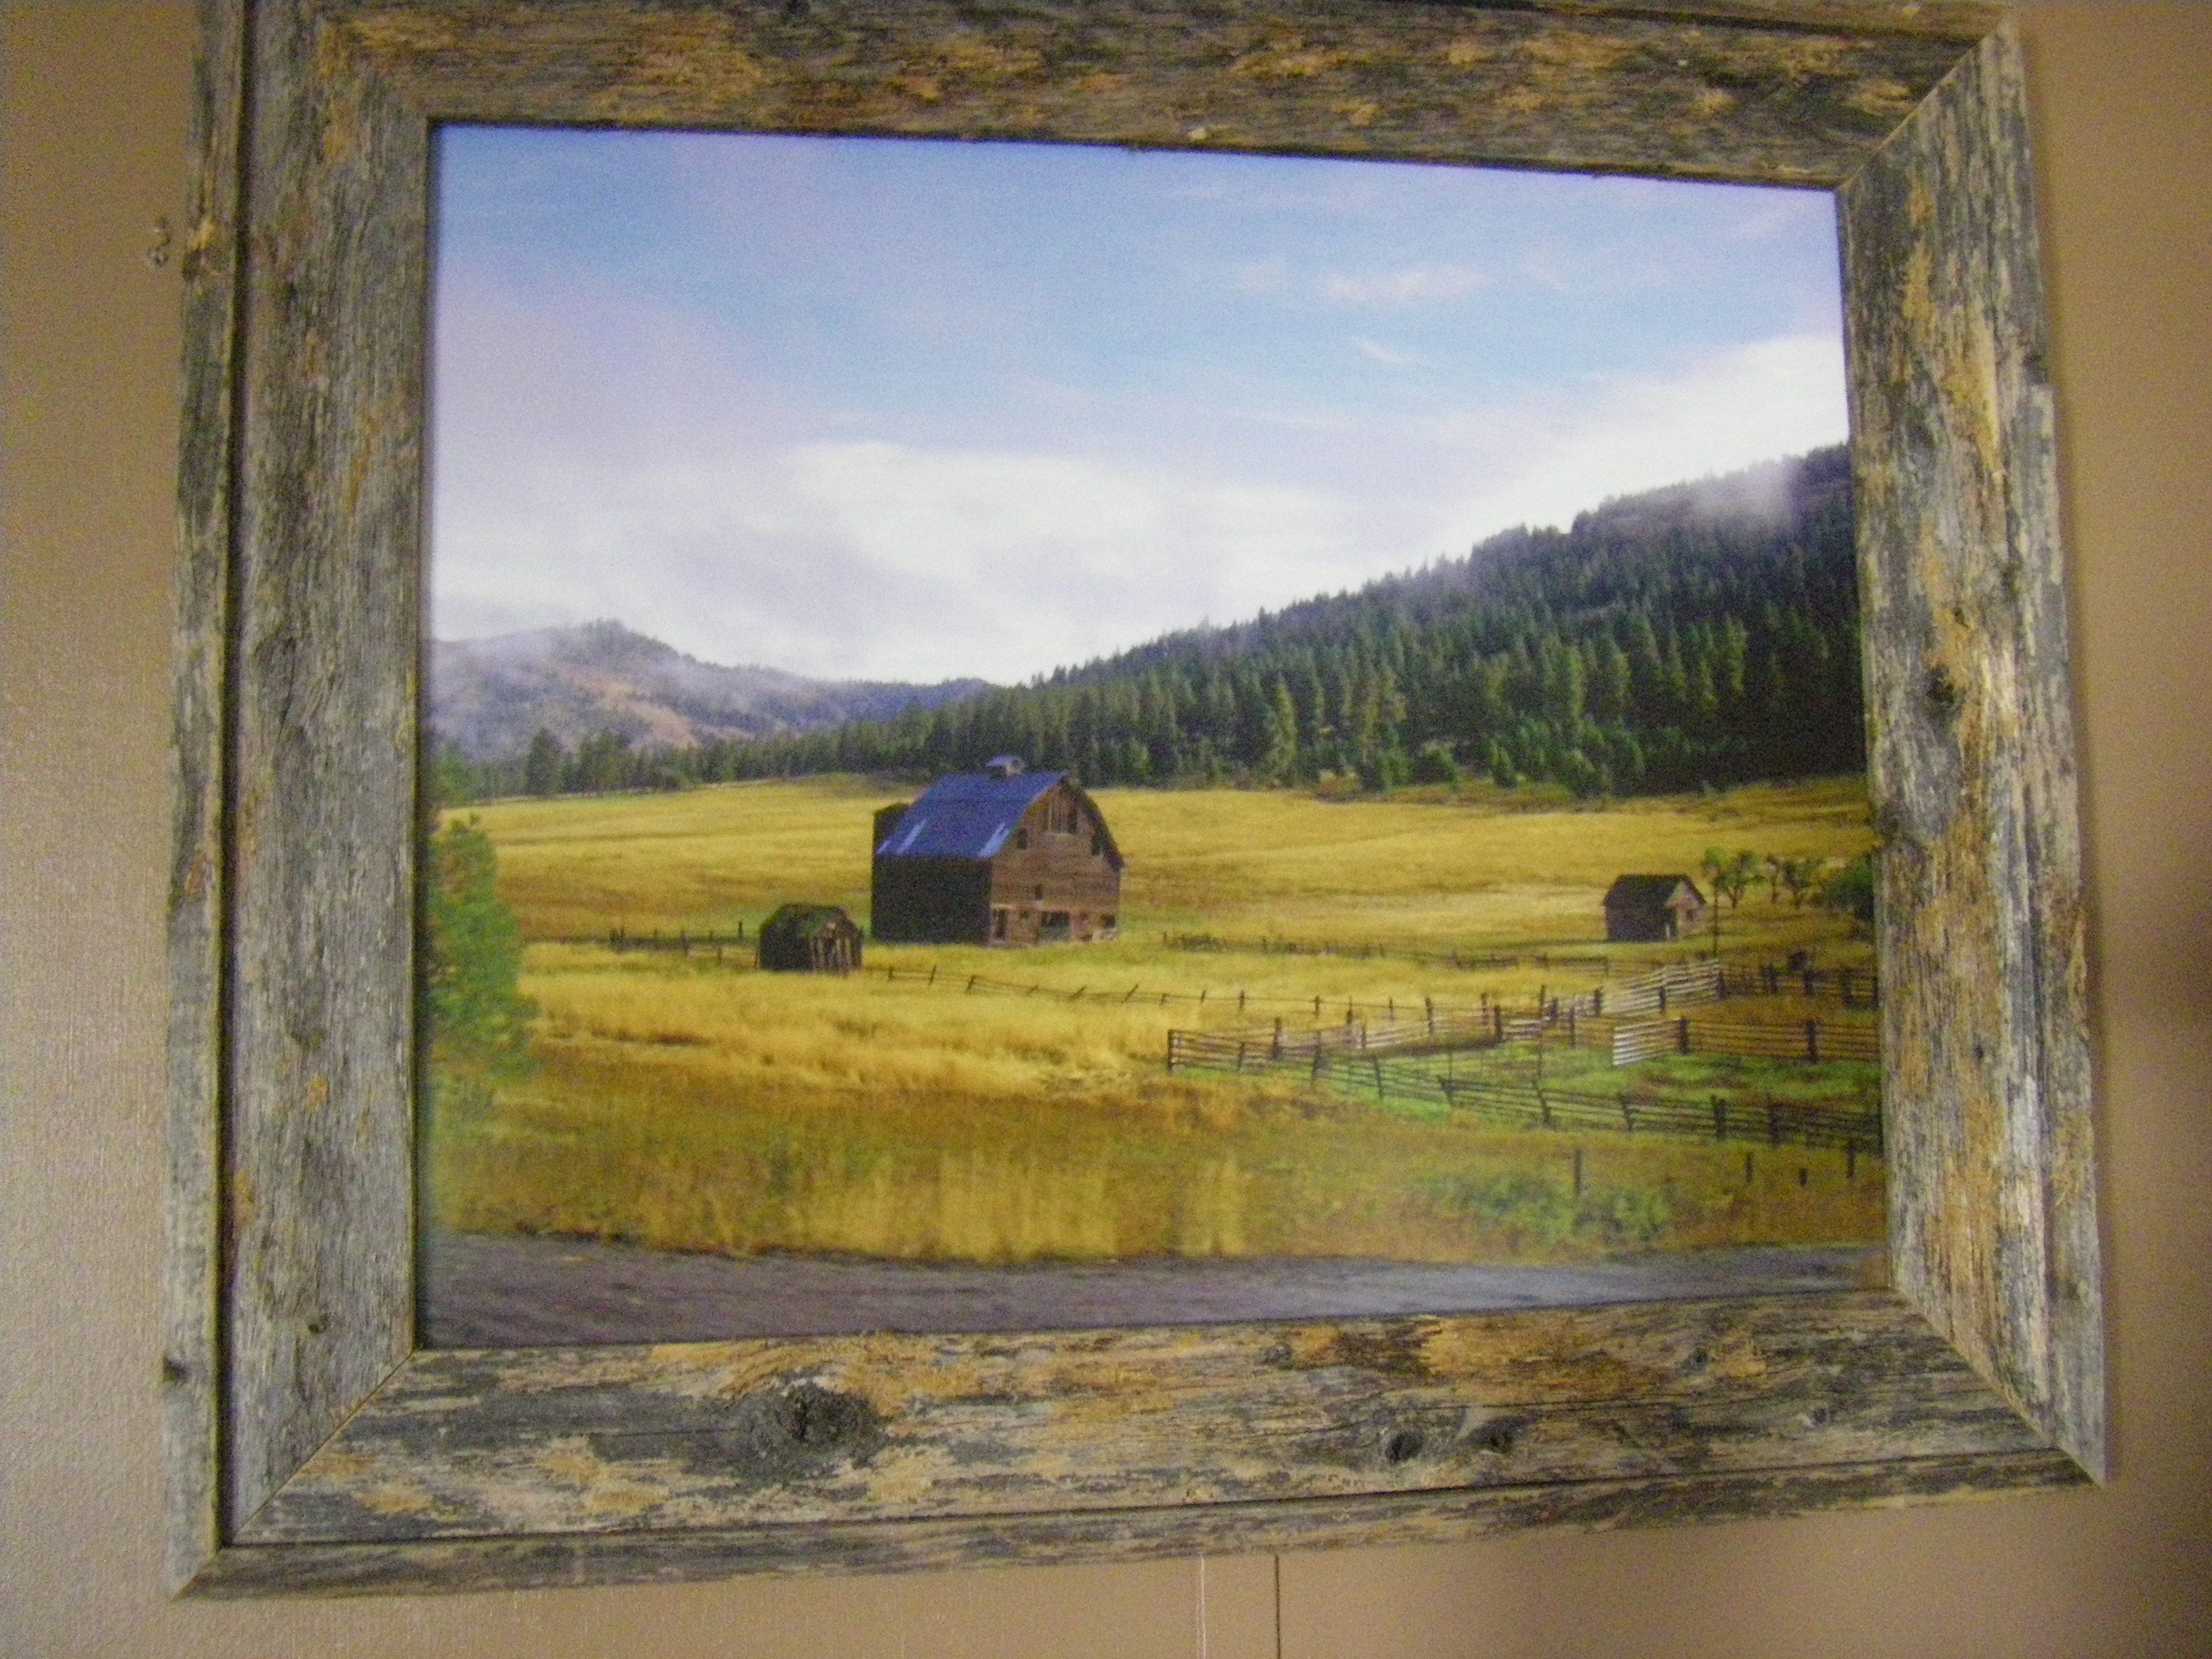 Picture I took on one of our trips, had it enlarged by Walgreens, framed in barnwood....love it